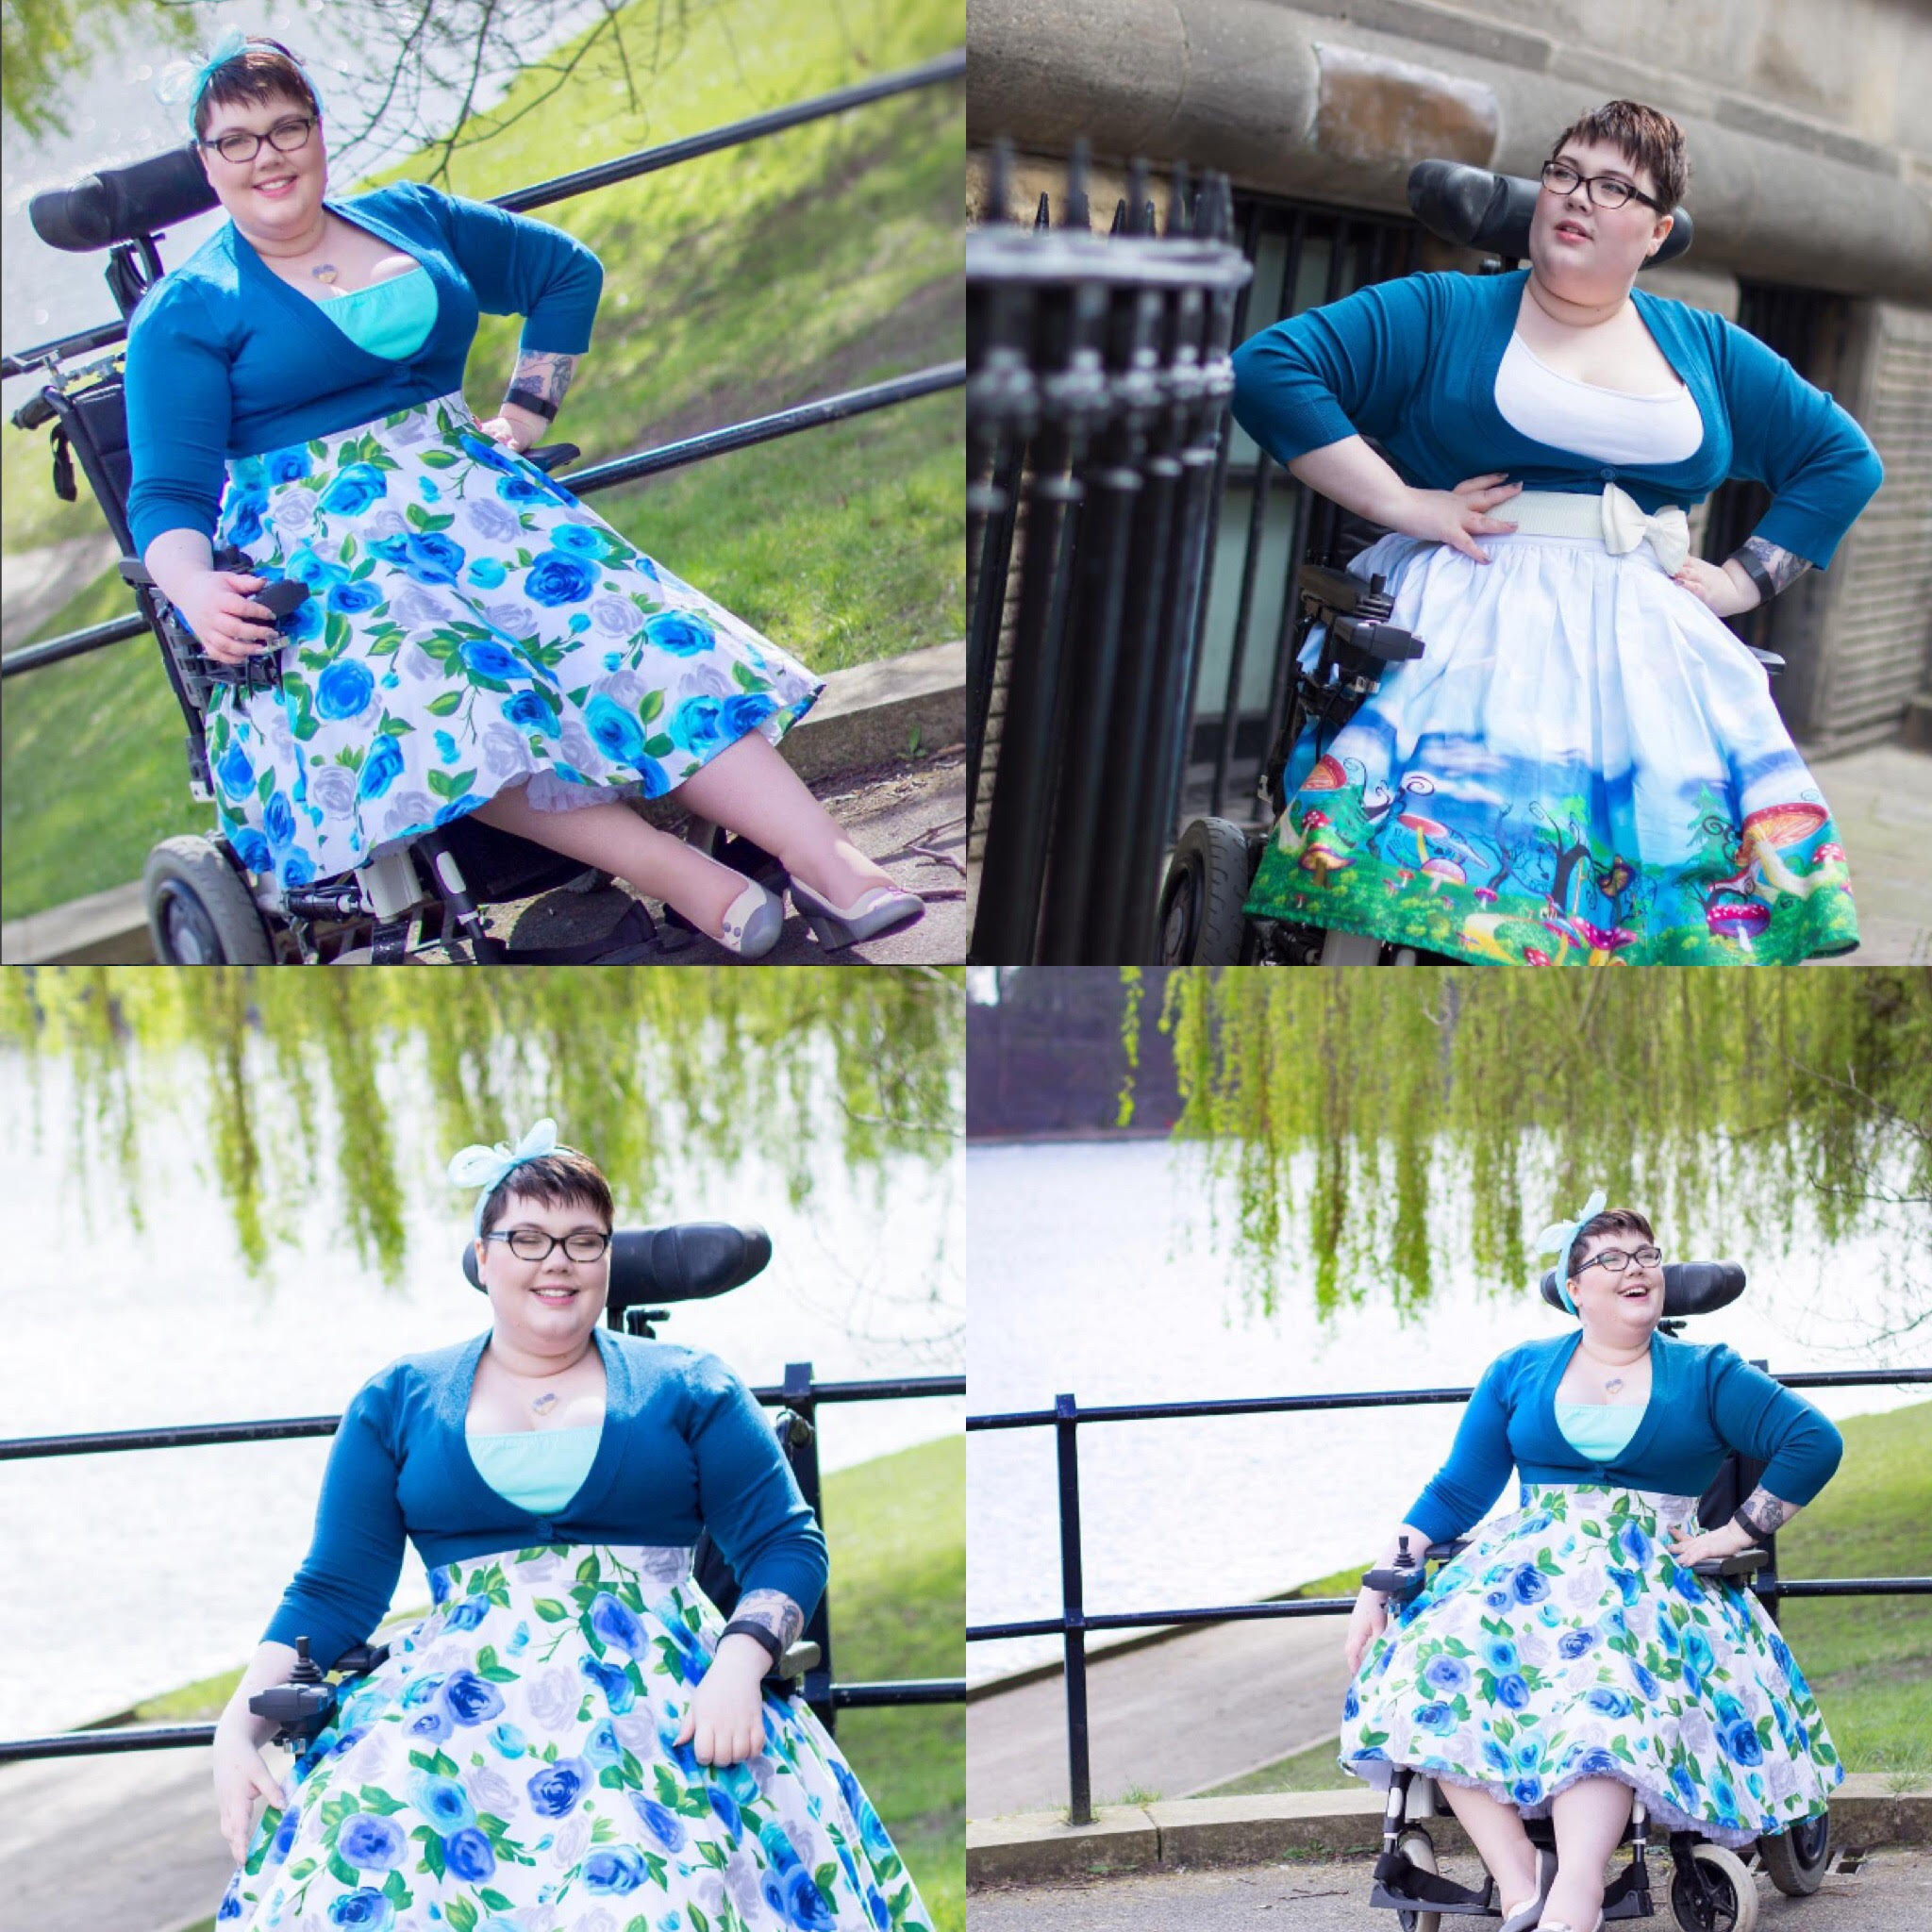 Wheelchair Vintage Fashionista!